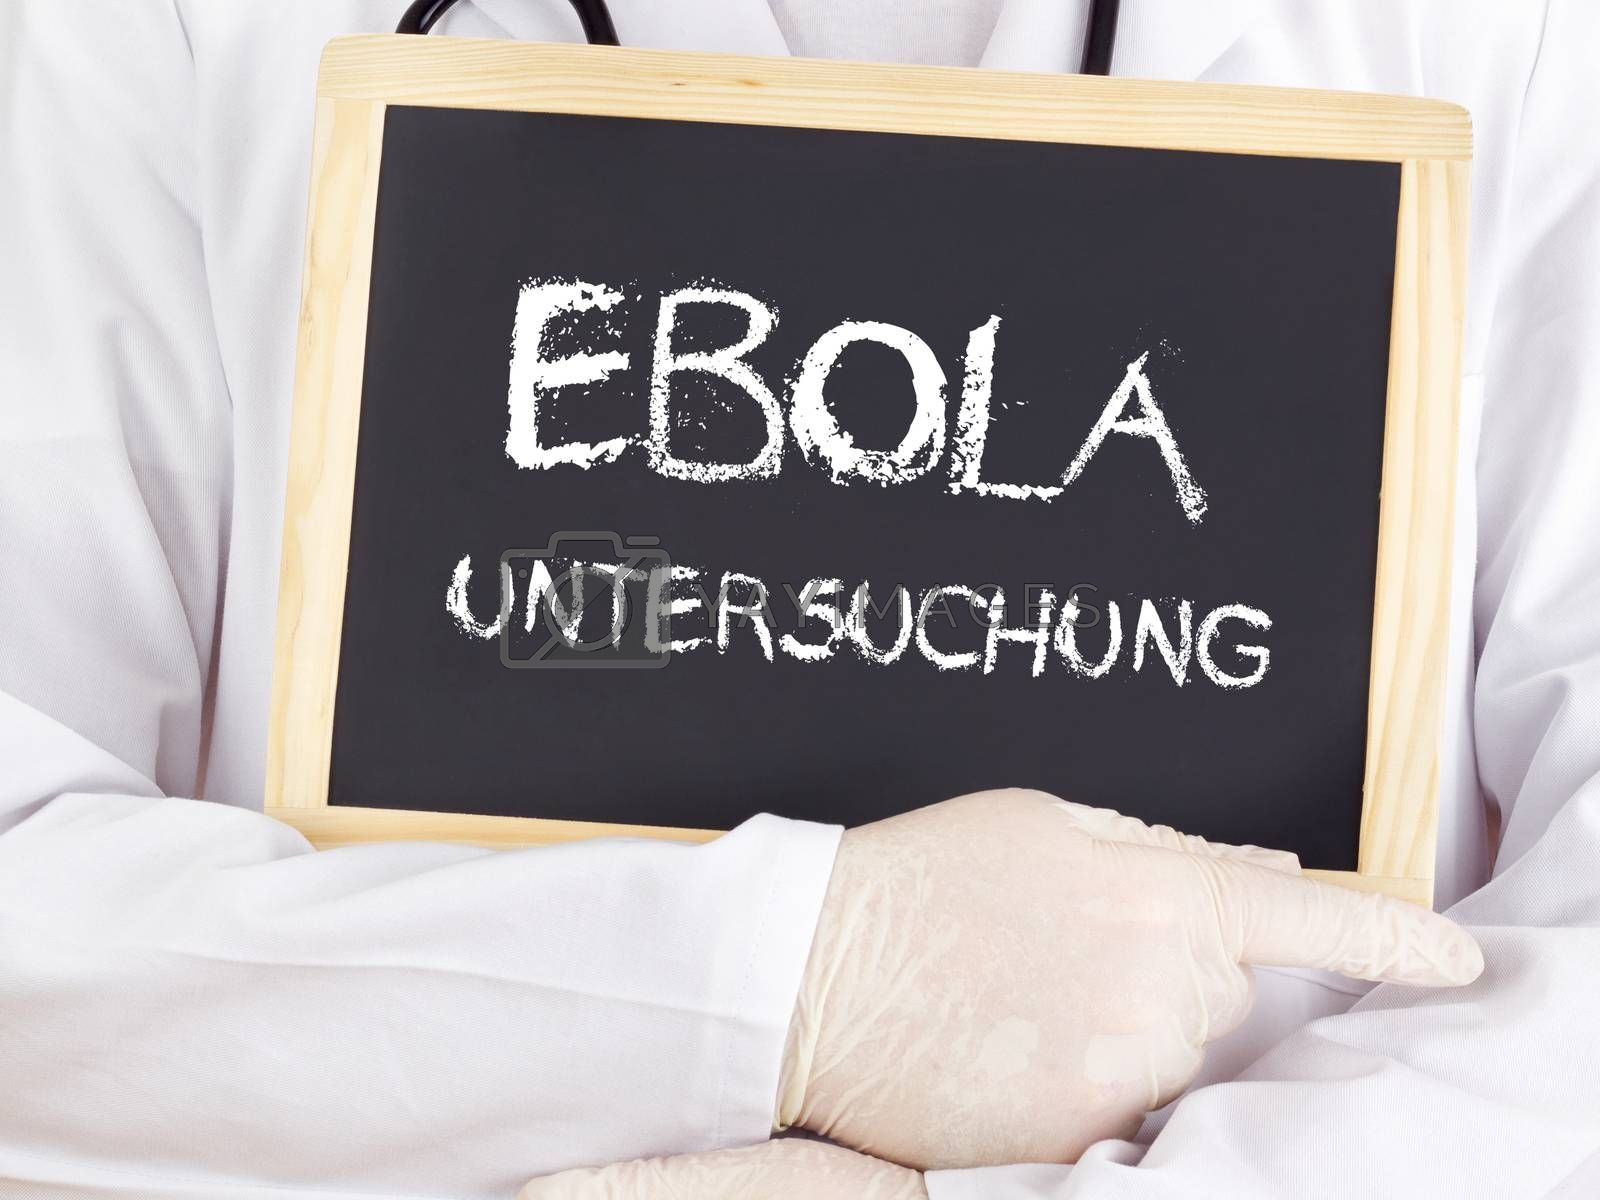 Doctor shows information: Ebola examination in german